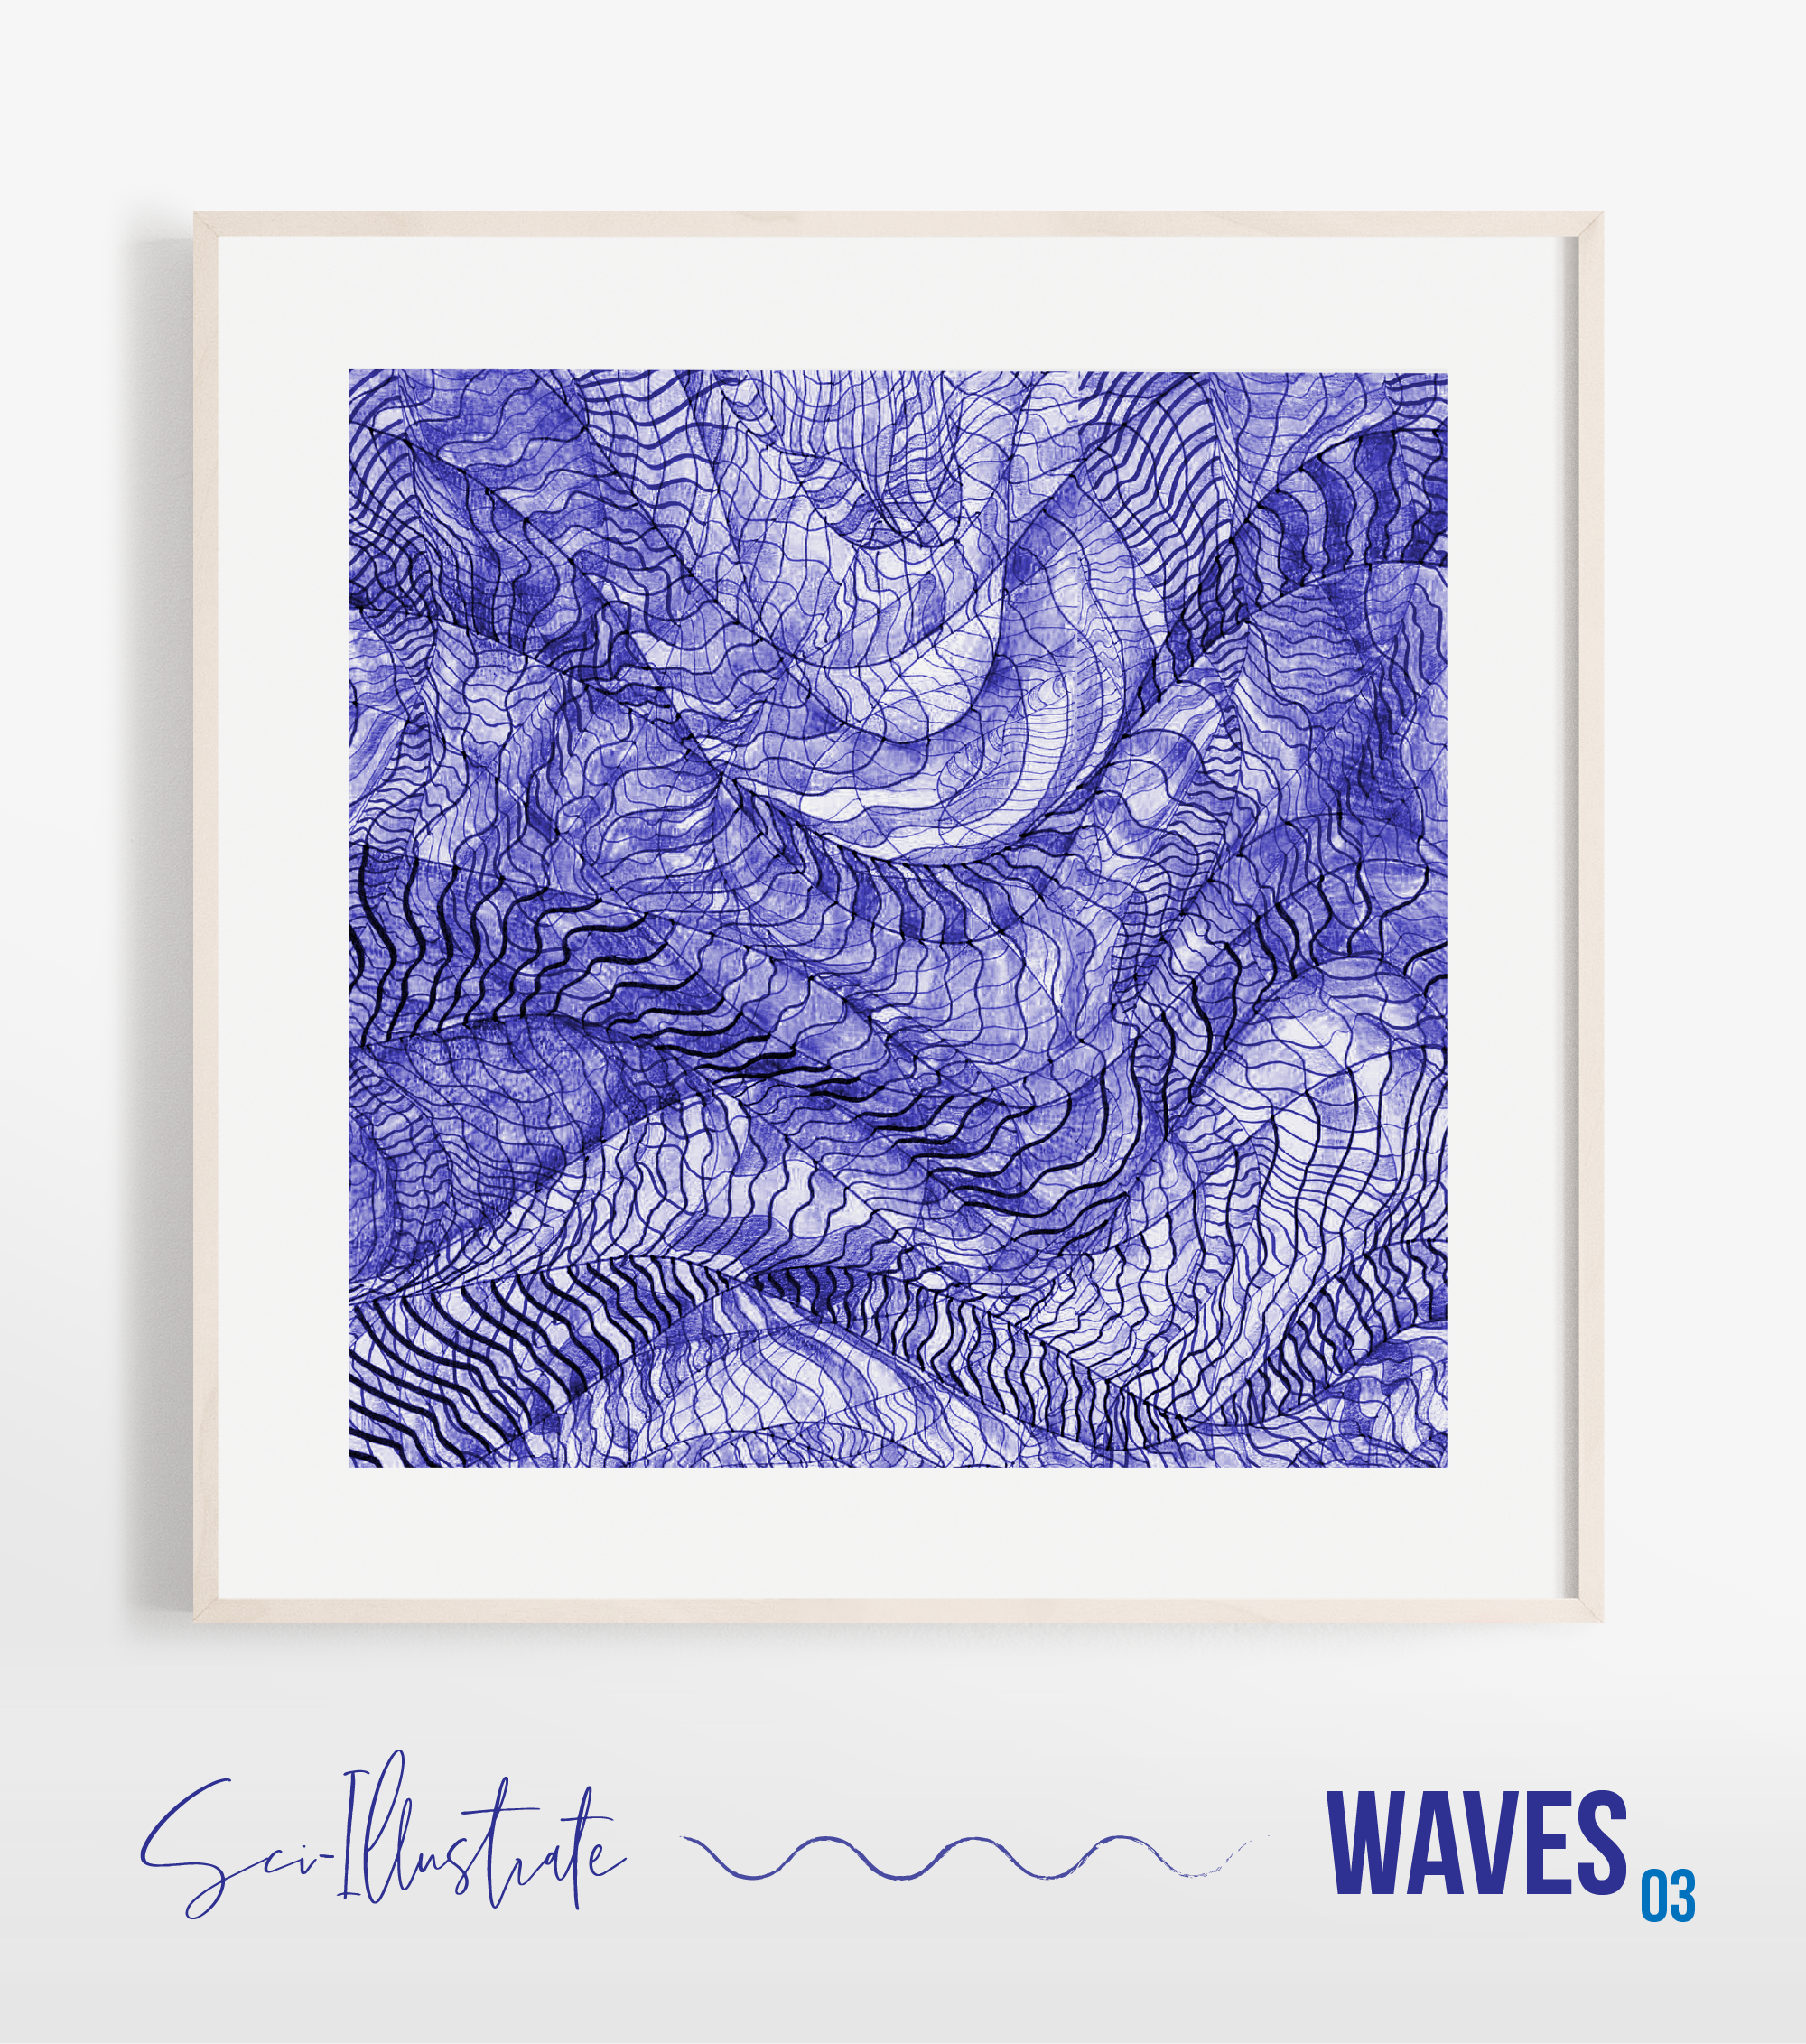 waves -SM 03-01.png